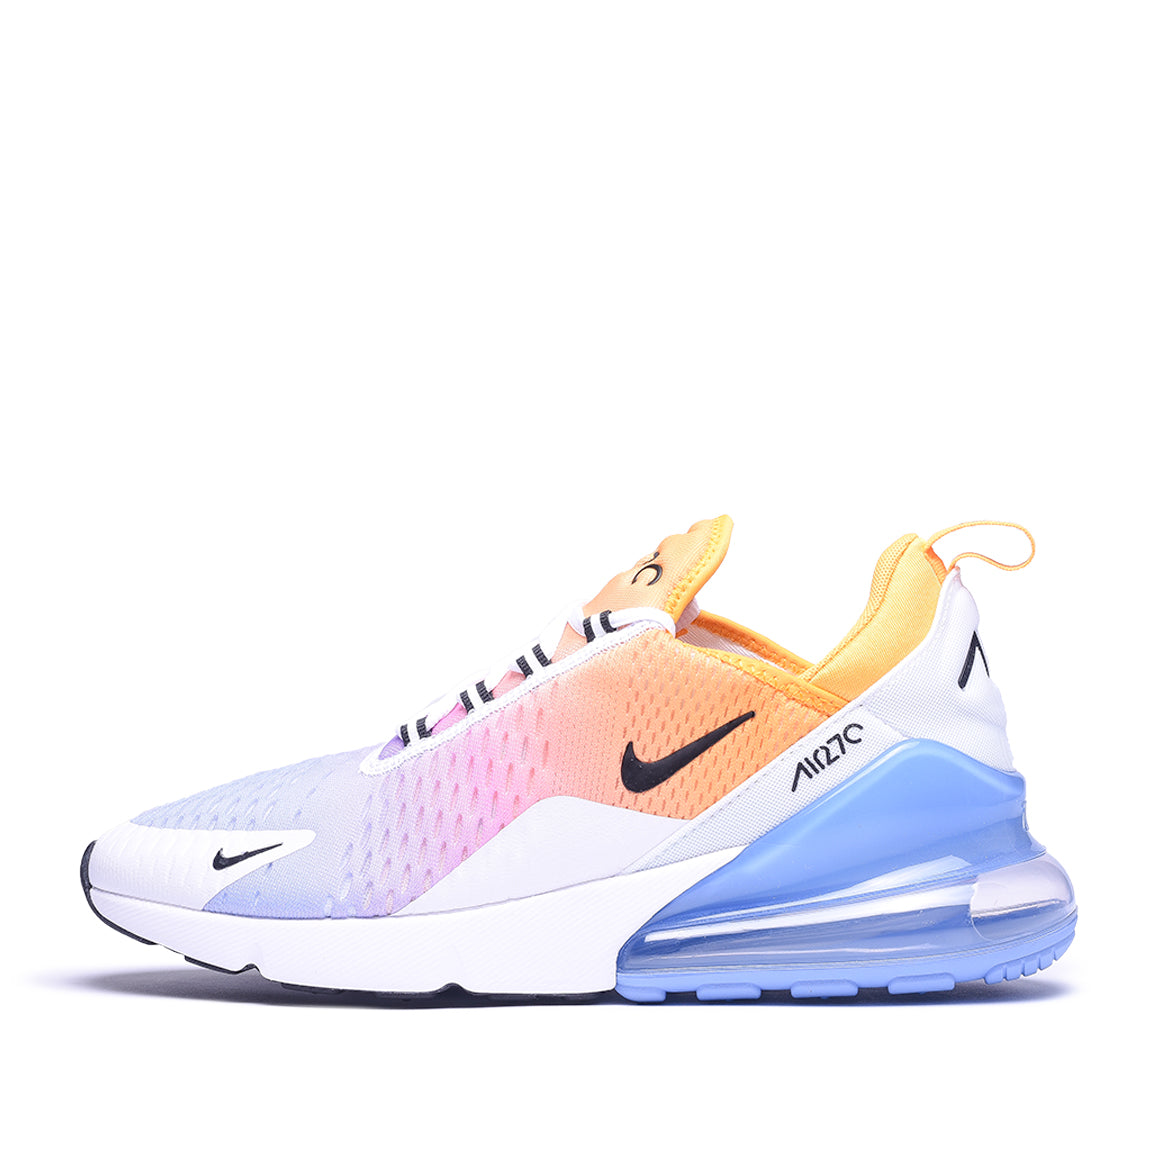 AIR MAX 270 UNIVERSITY GOLD BLACK PSYCHIC PINK